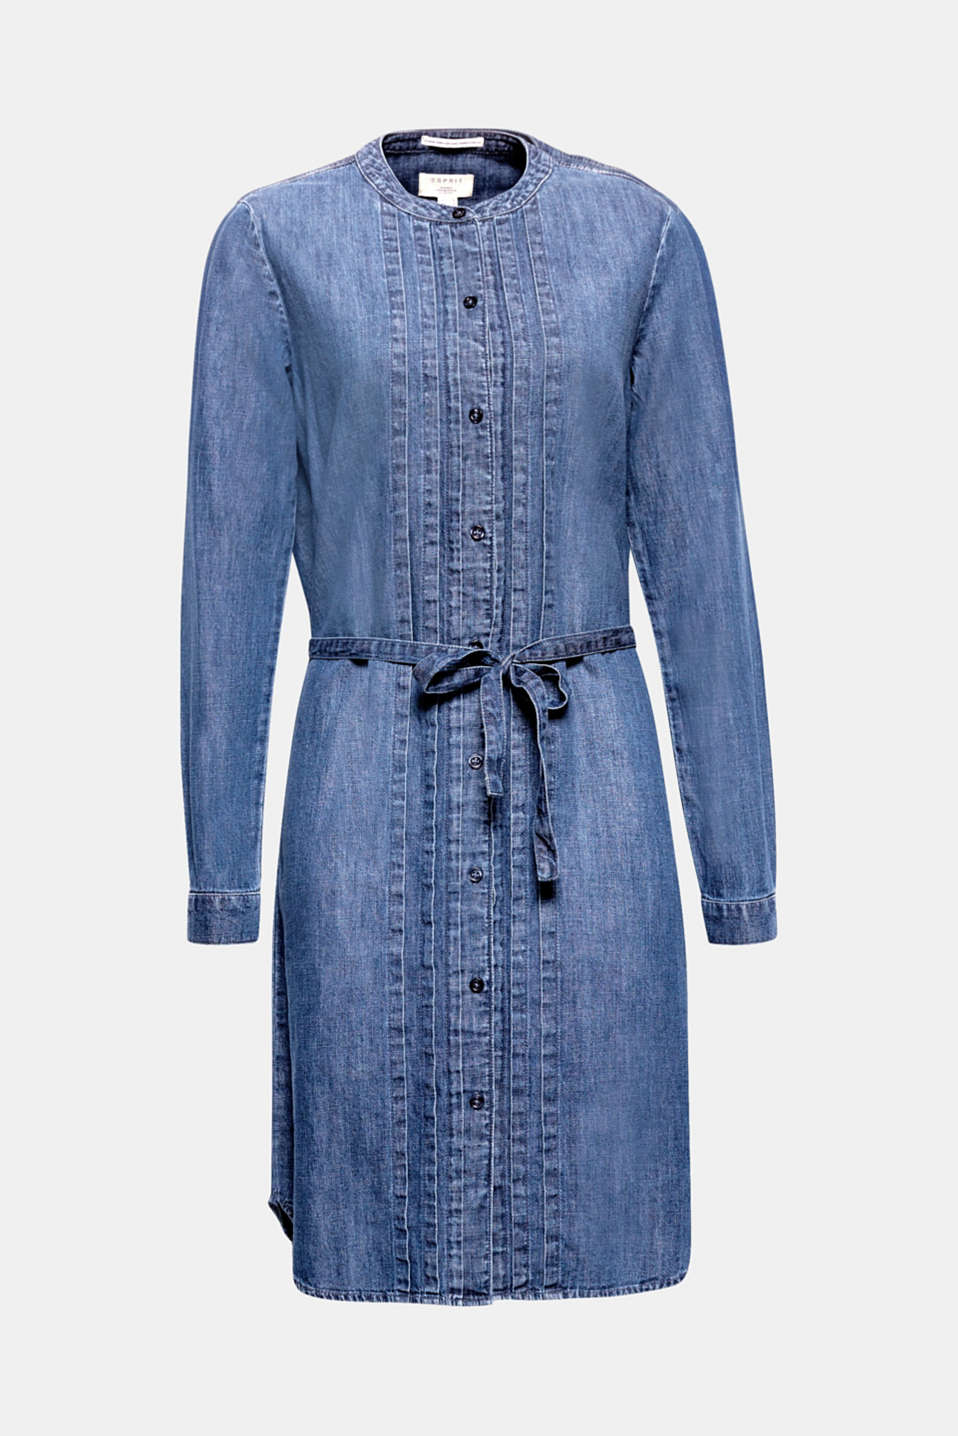 This casual cotton denim dress is decorated with pintucks and can be individually adjusted at the waist with the tie-around belt.